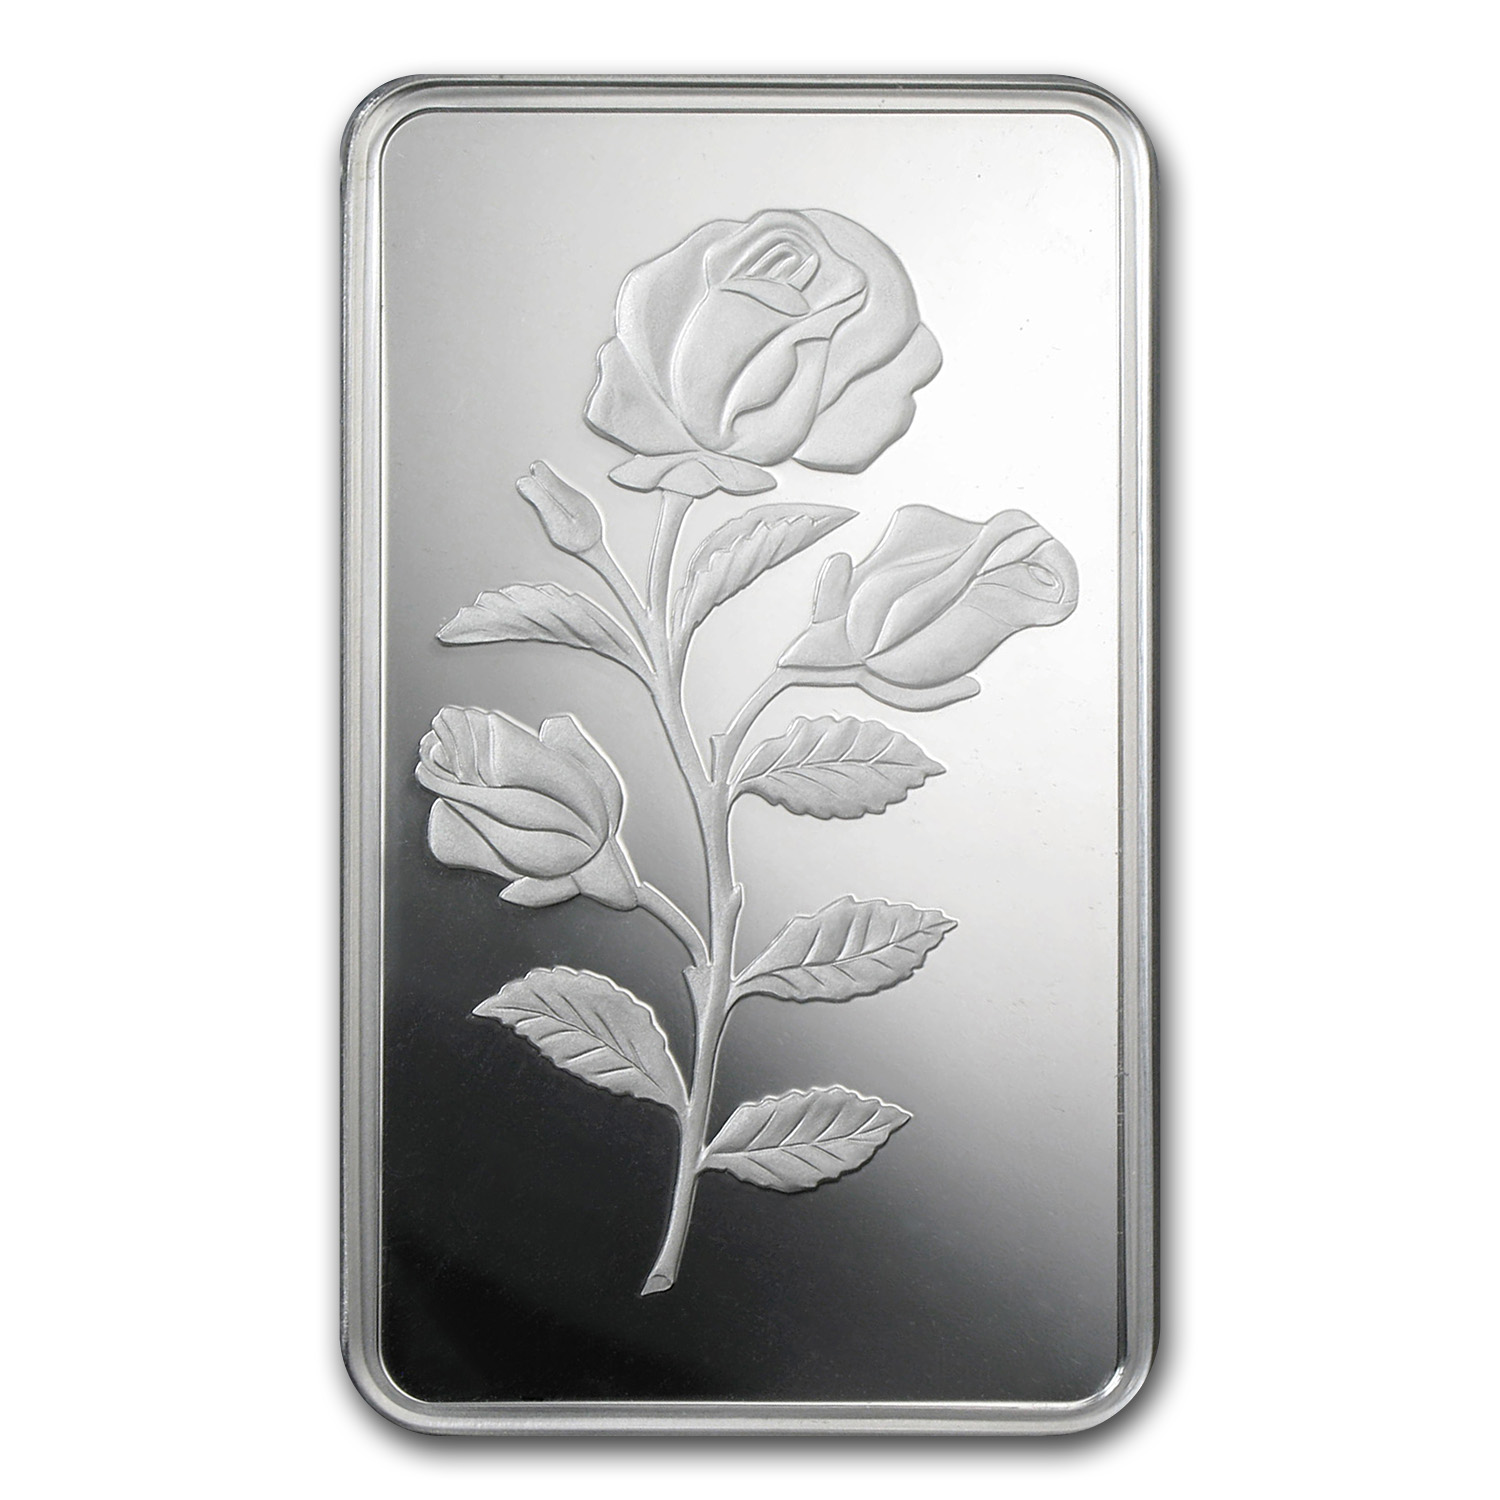 5 gram Silver Bar - PAMP Suisse (Rosa, In Assay)